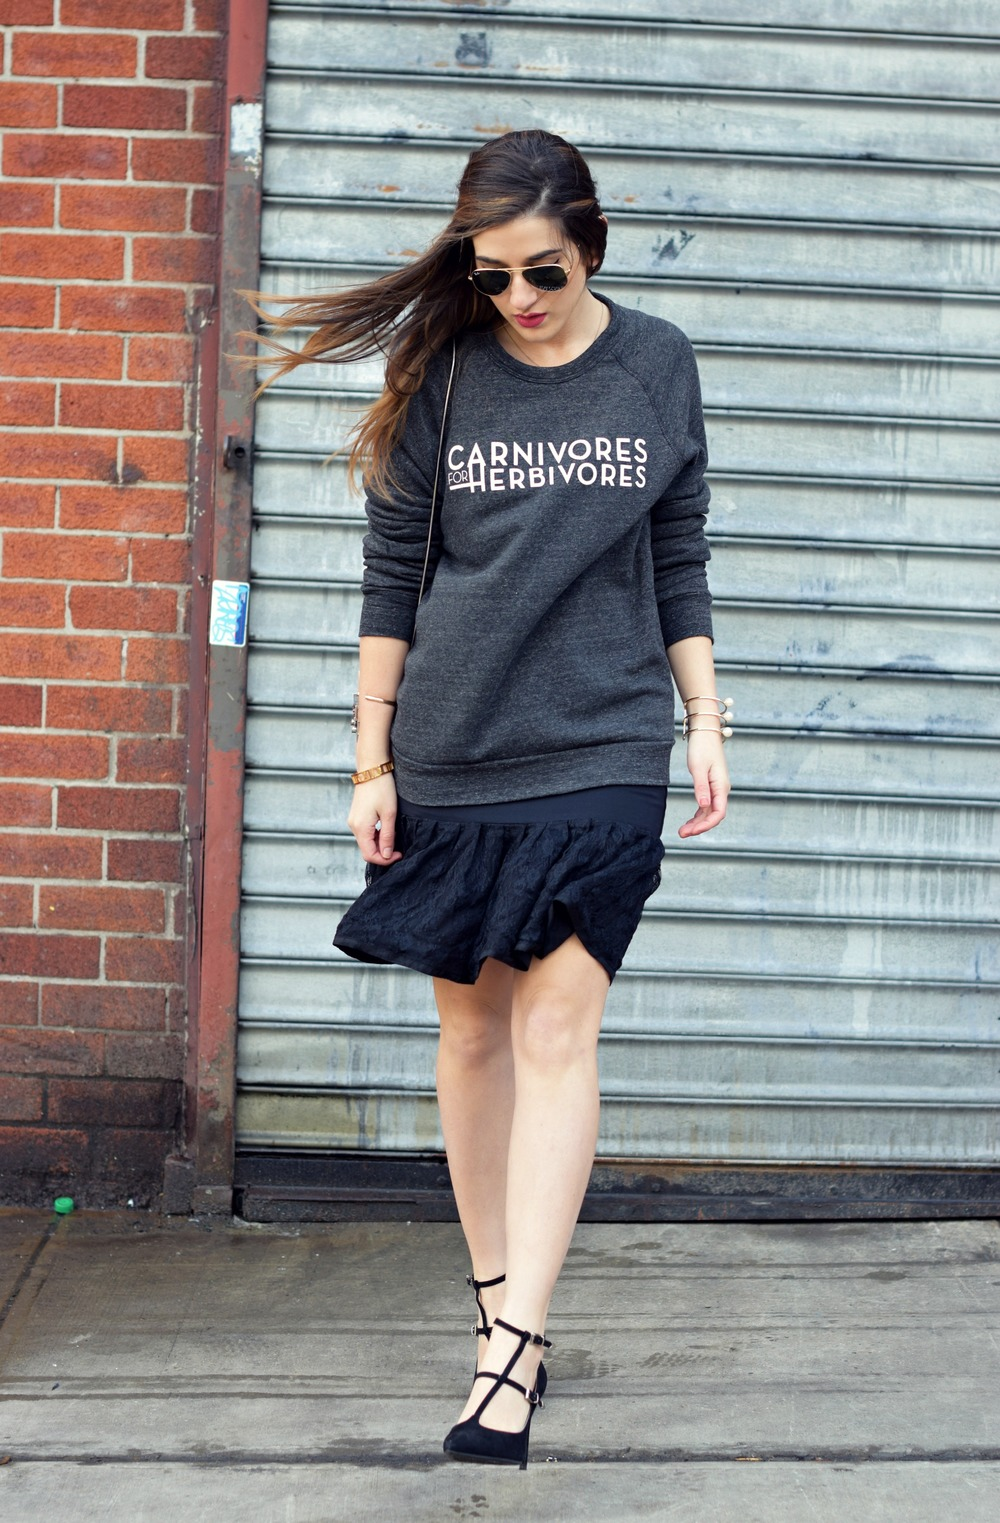 Carnivores For Herbivores Fauxgerty Louboutins & Love Fashion Blog Esther Santer NYC Street Style Blogger Animal Lover Cruelty Free Suede Vegan Leather RayBan Aviators Sunglasses Grey Sweatshirt Girl Women Lace Skirt OOTD Outfit Shop USA Hair Inspo.jpg